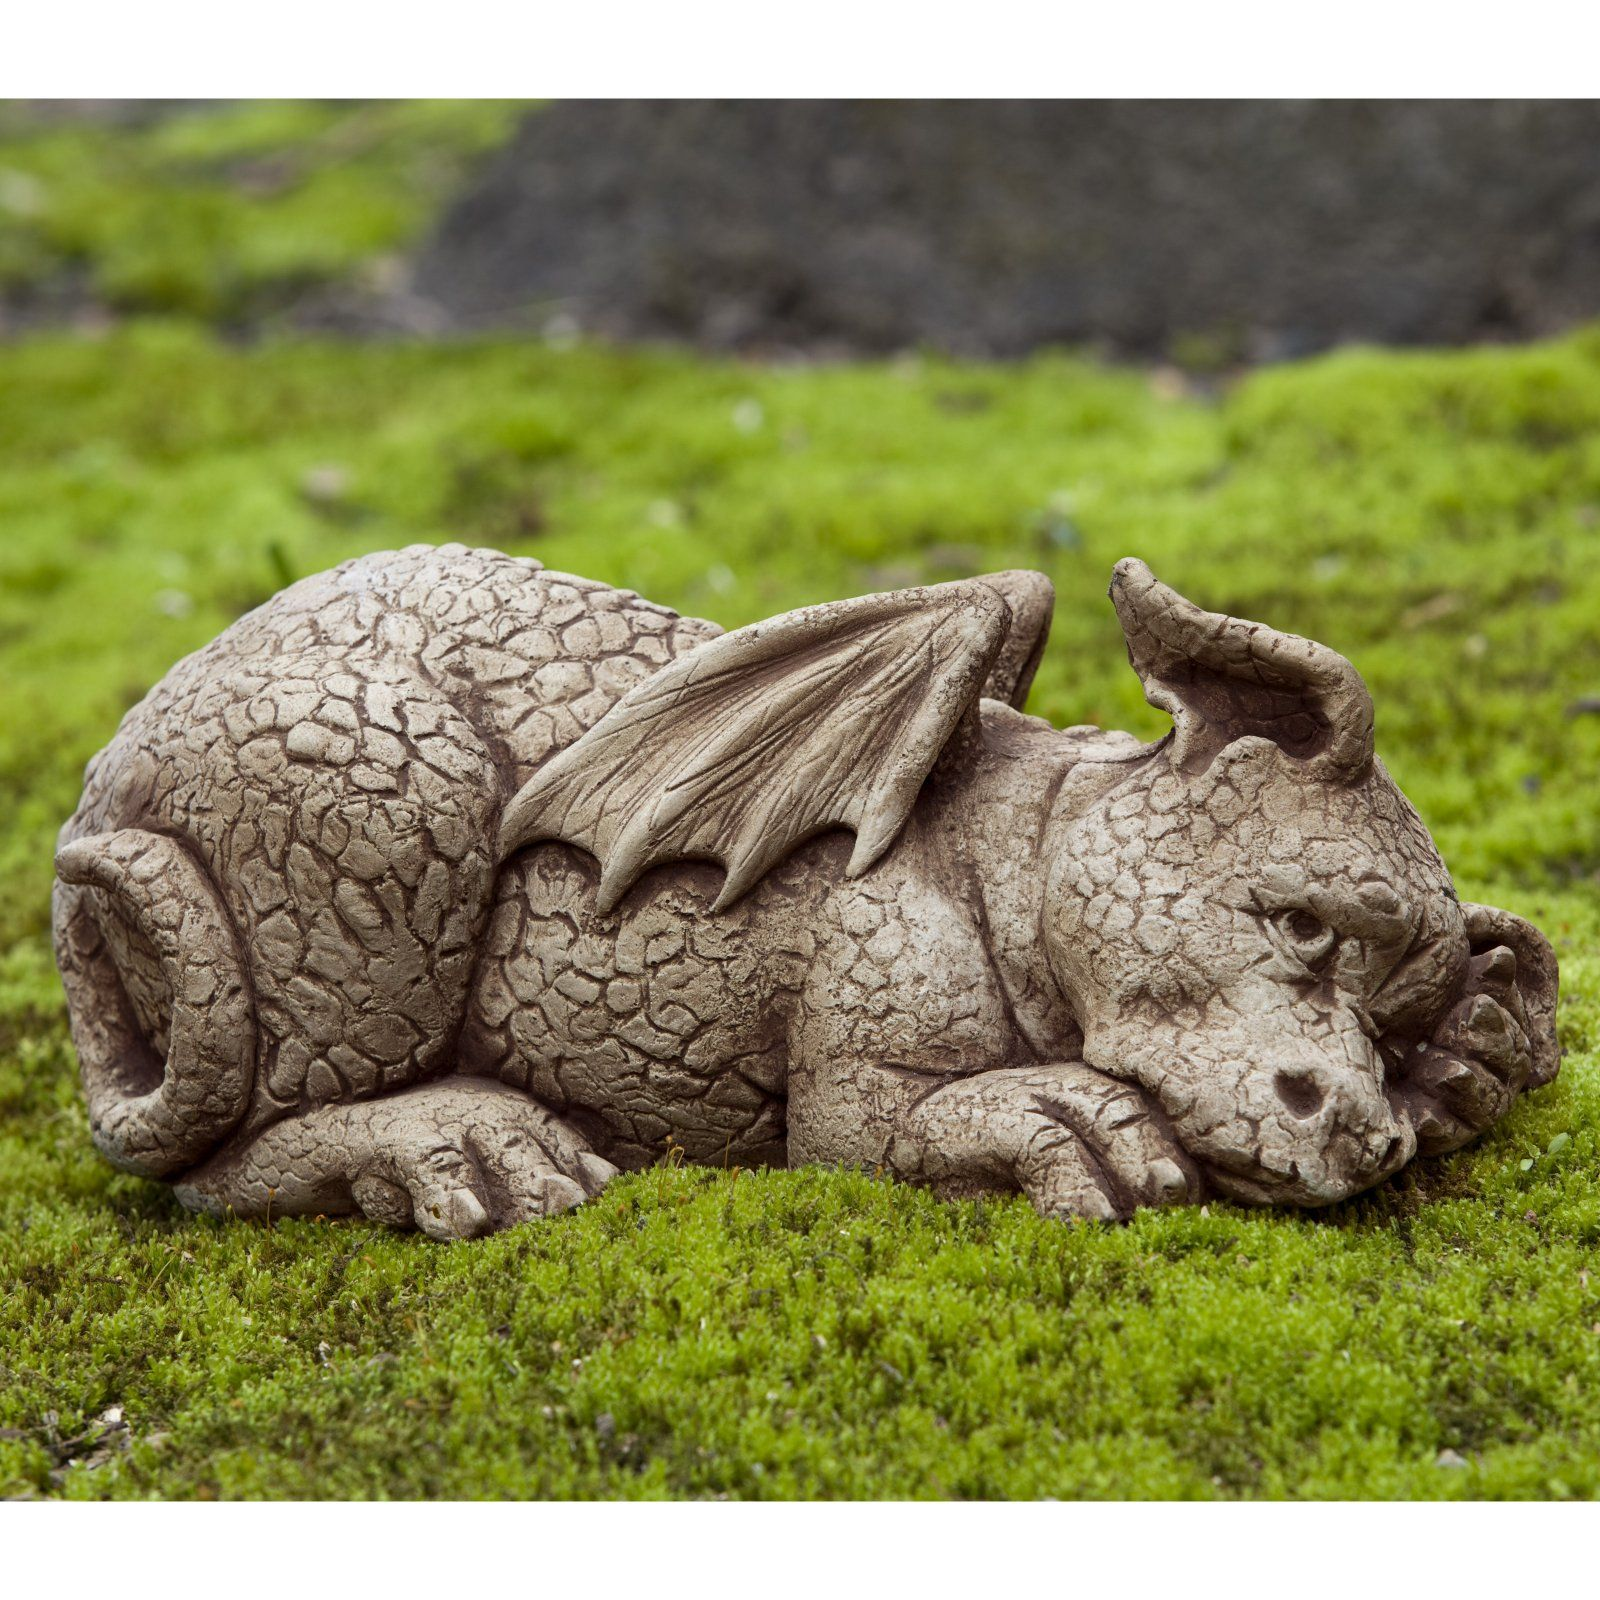 Cast Stone Garden Statues Campania international puzzle the dragon cast stone garden statue campania international puzzle the dragon cast stone garden statue workwithnaturefo